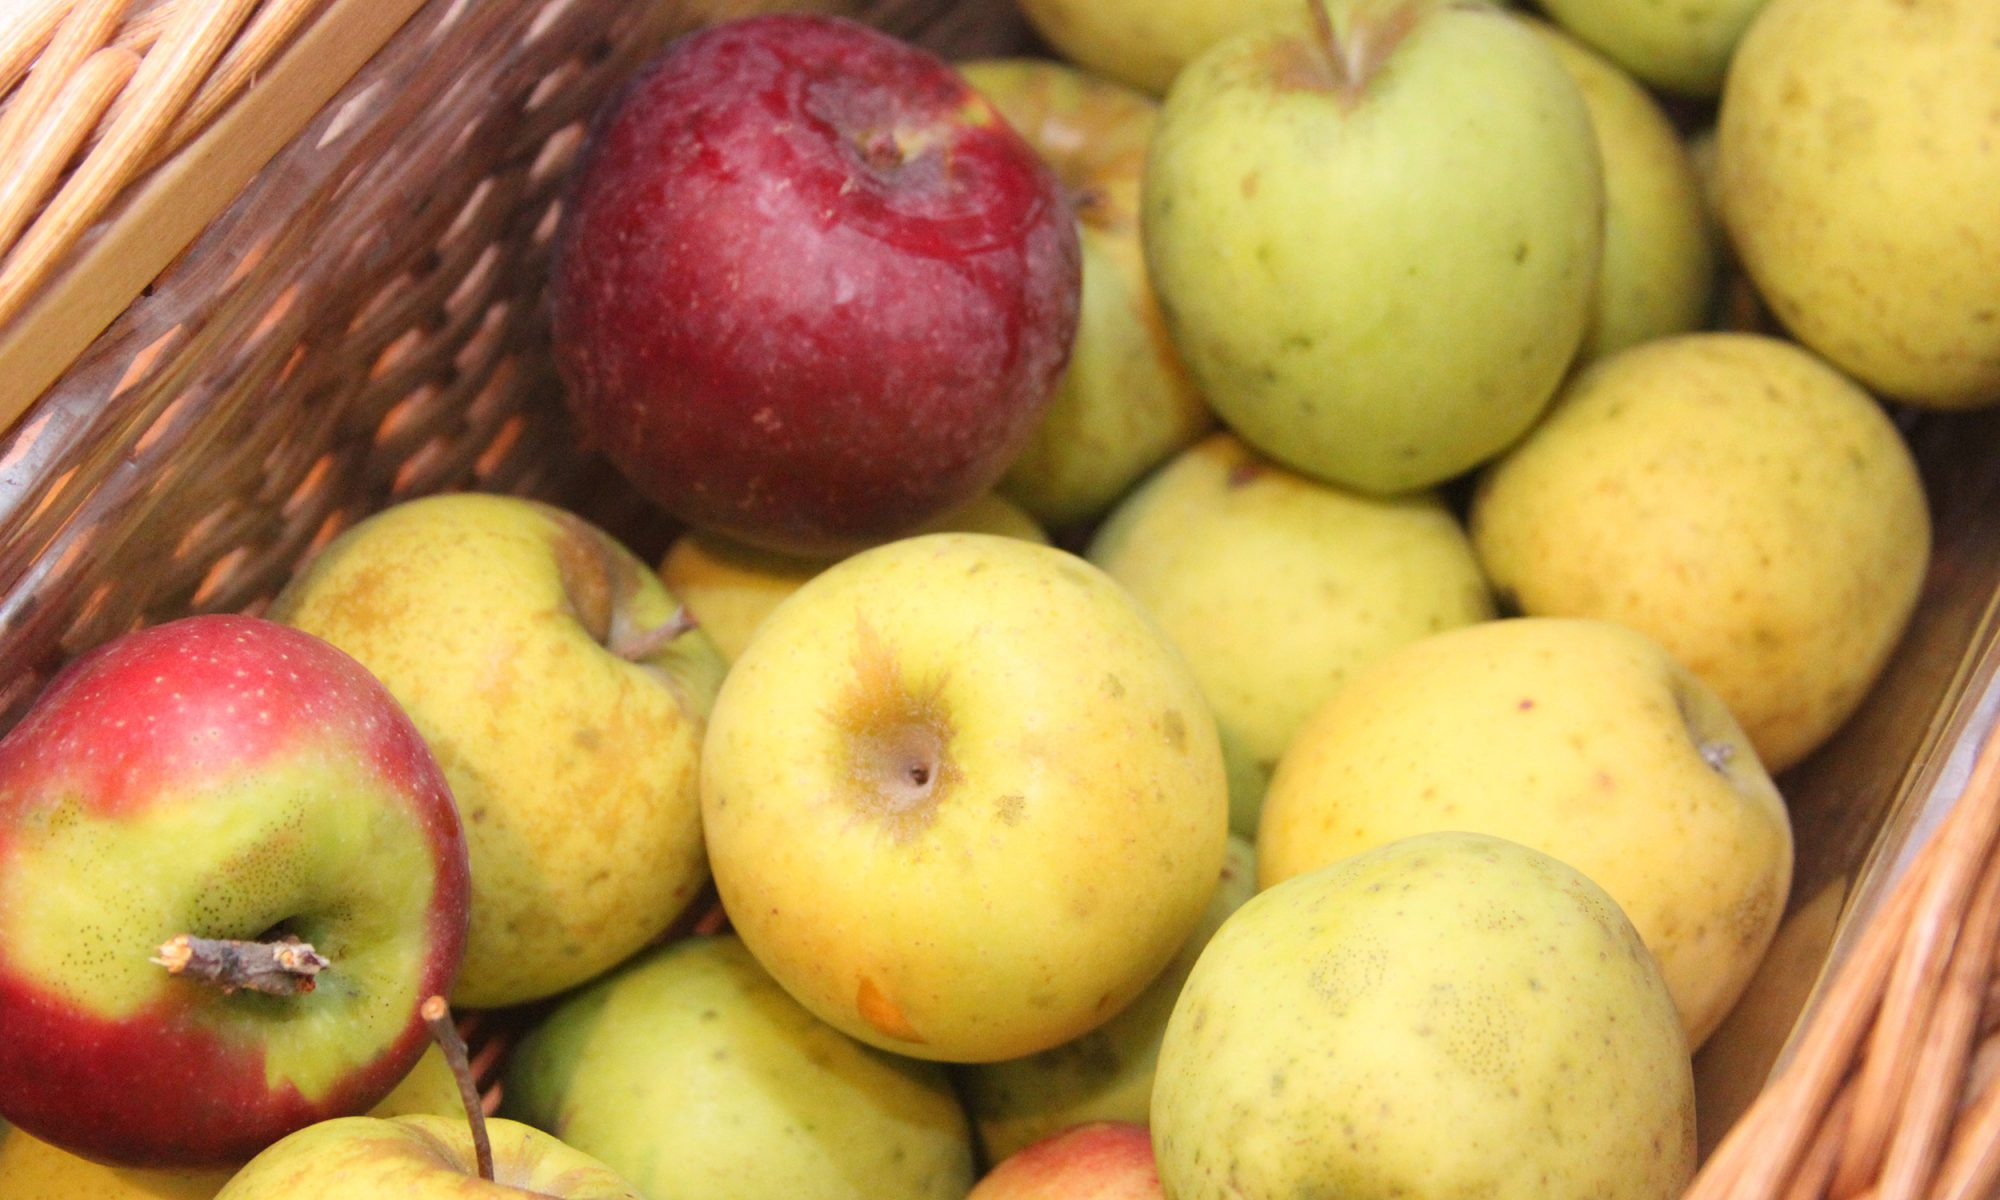 EC: Walmart Starts Selling Ugly Apples in Florida